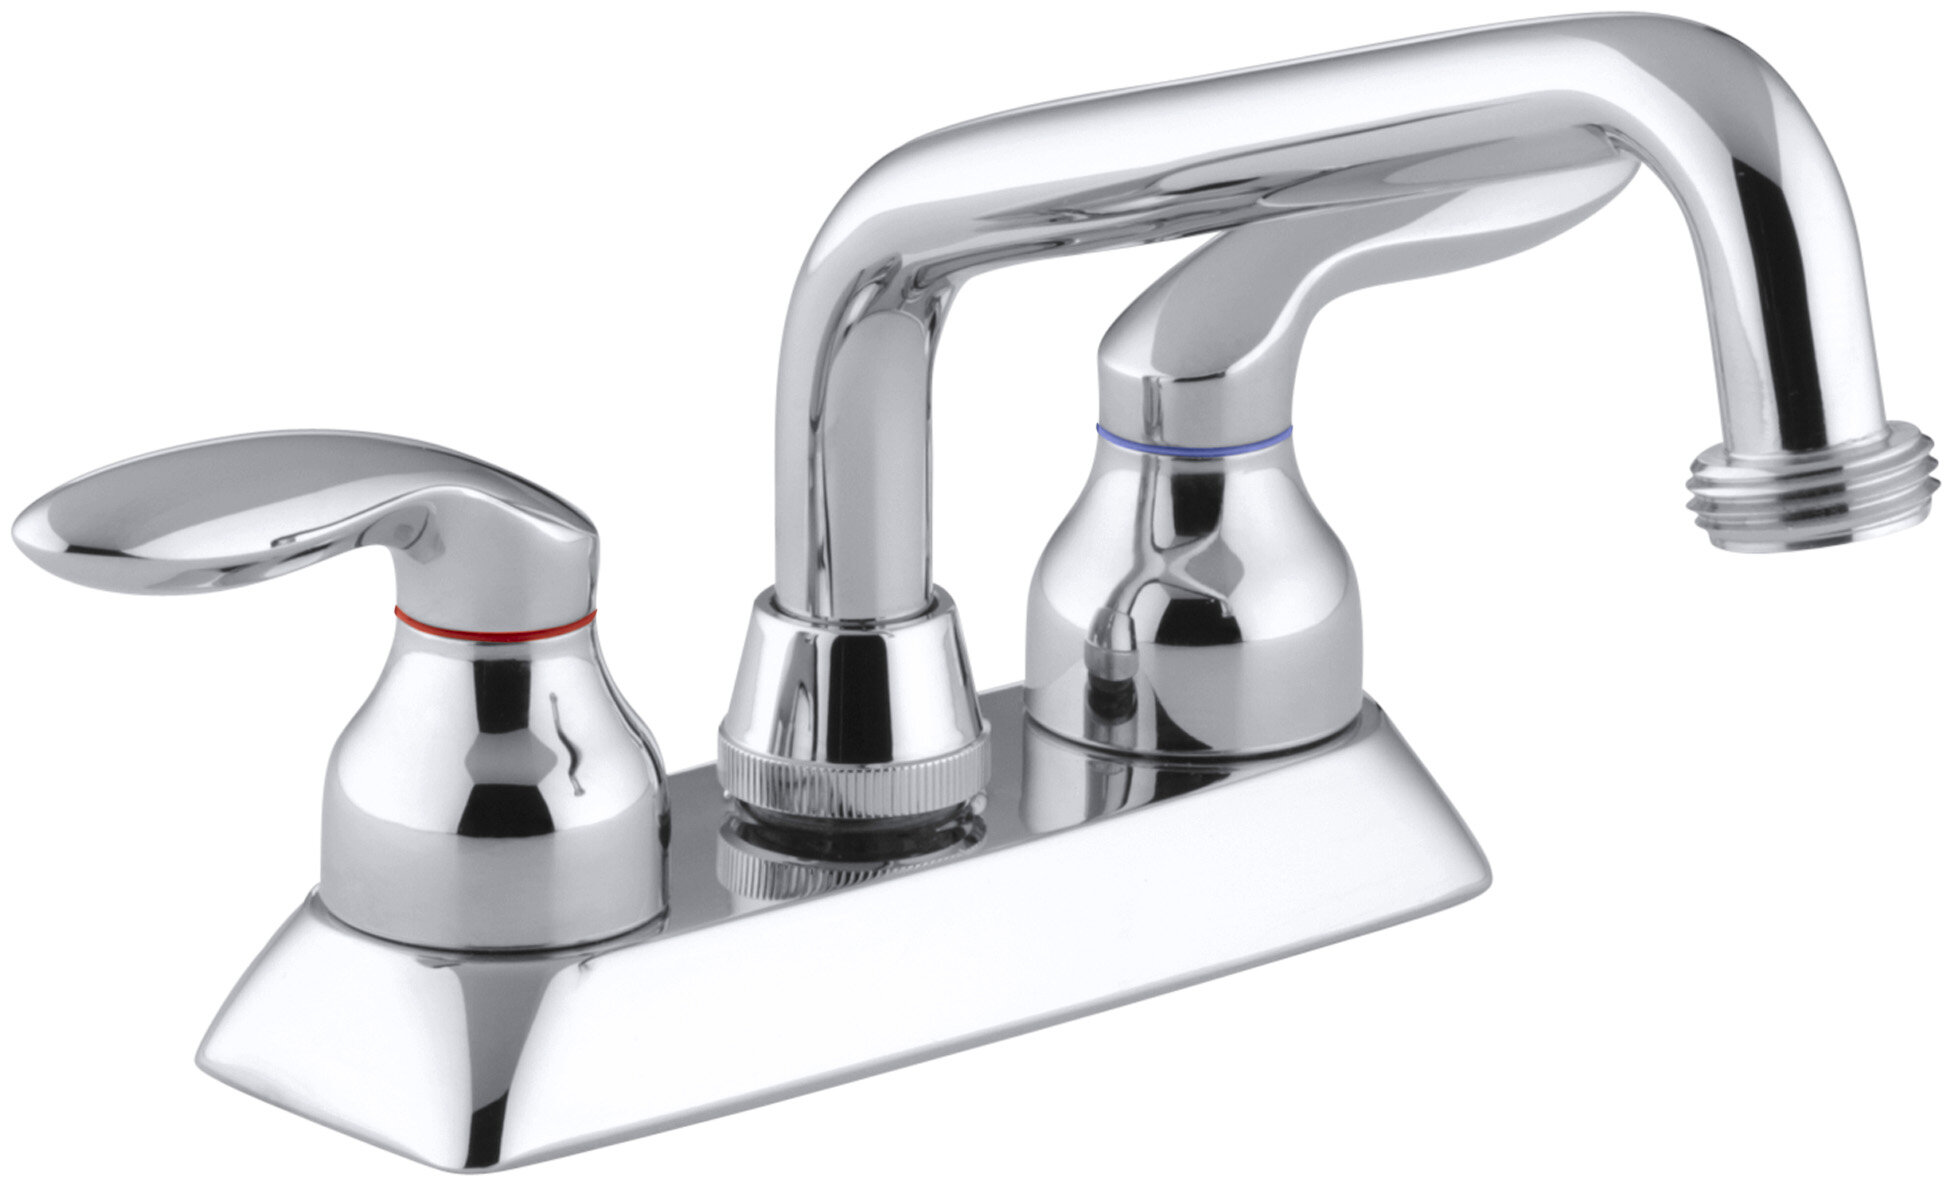 photos size of htsrec kitchen full out laundry delta faucets pull faucet touchless classy tub best inspirational and com